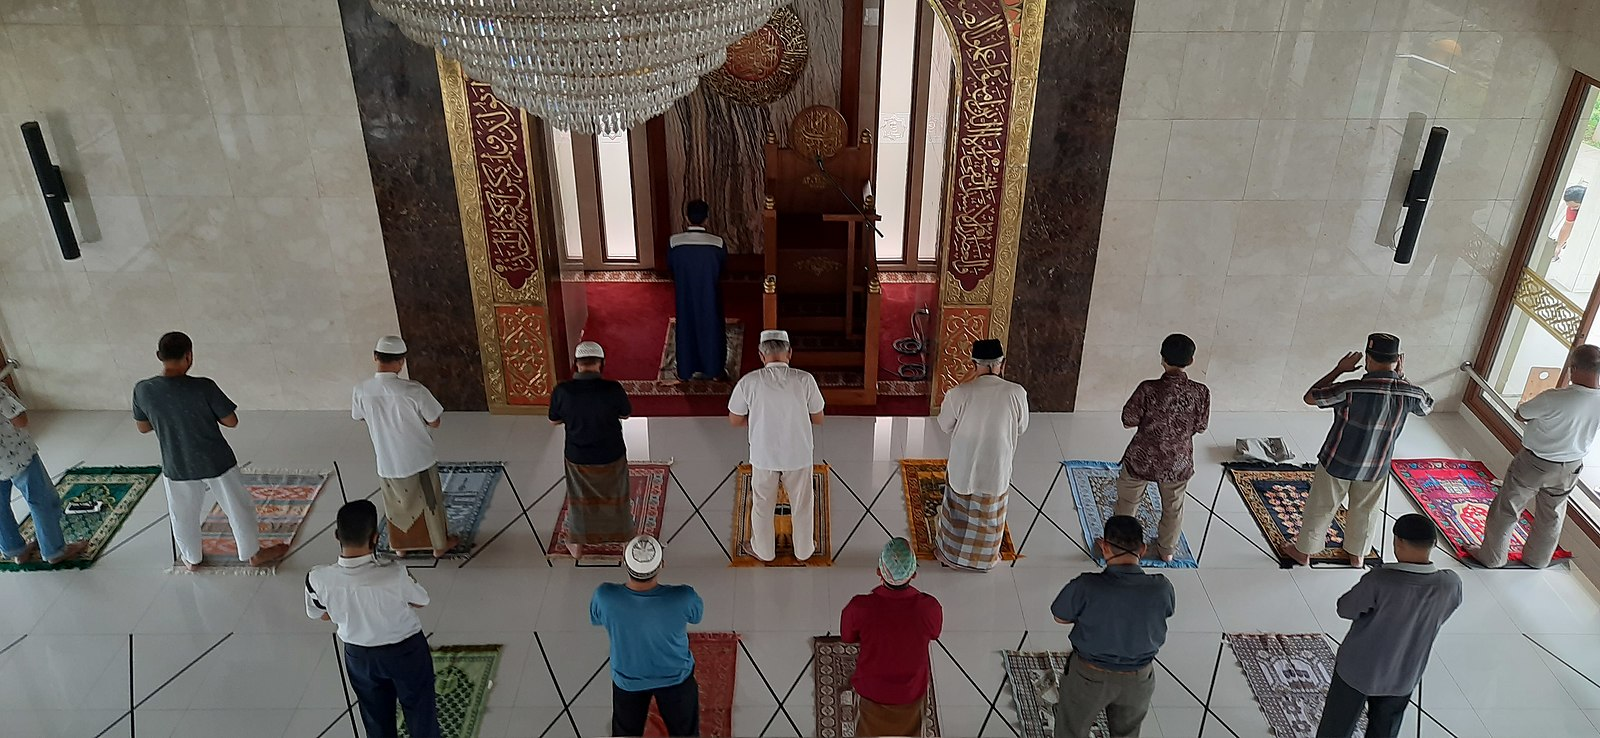 1600px-Islamic_Congregational_Prayer_with_Physical_Distancing_during_the_Covid-19_Pandemic